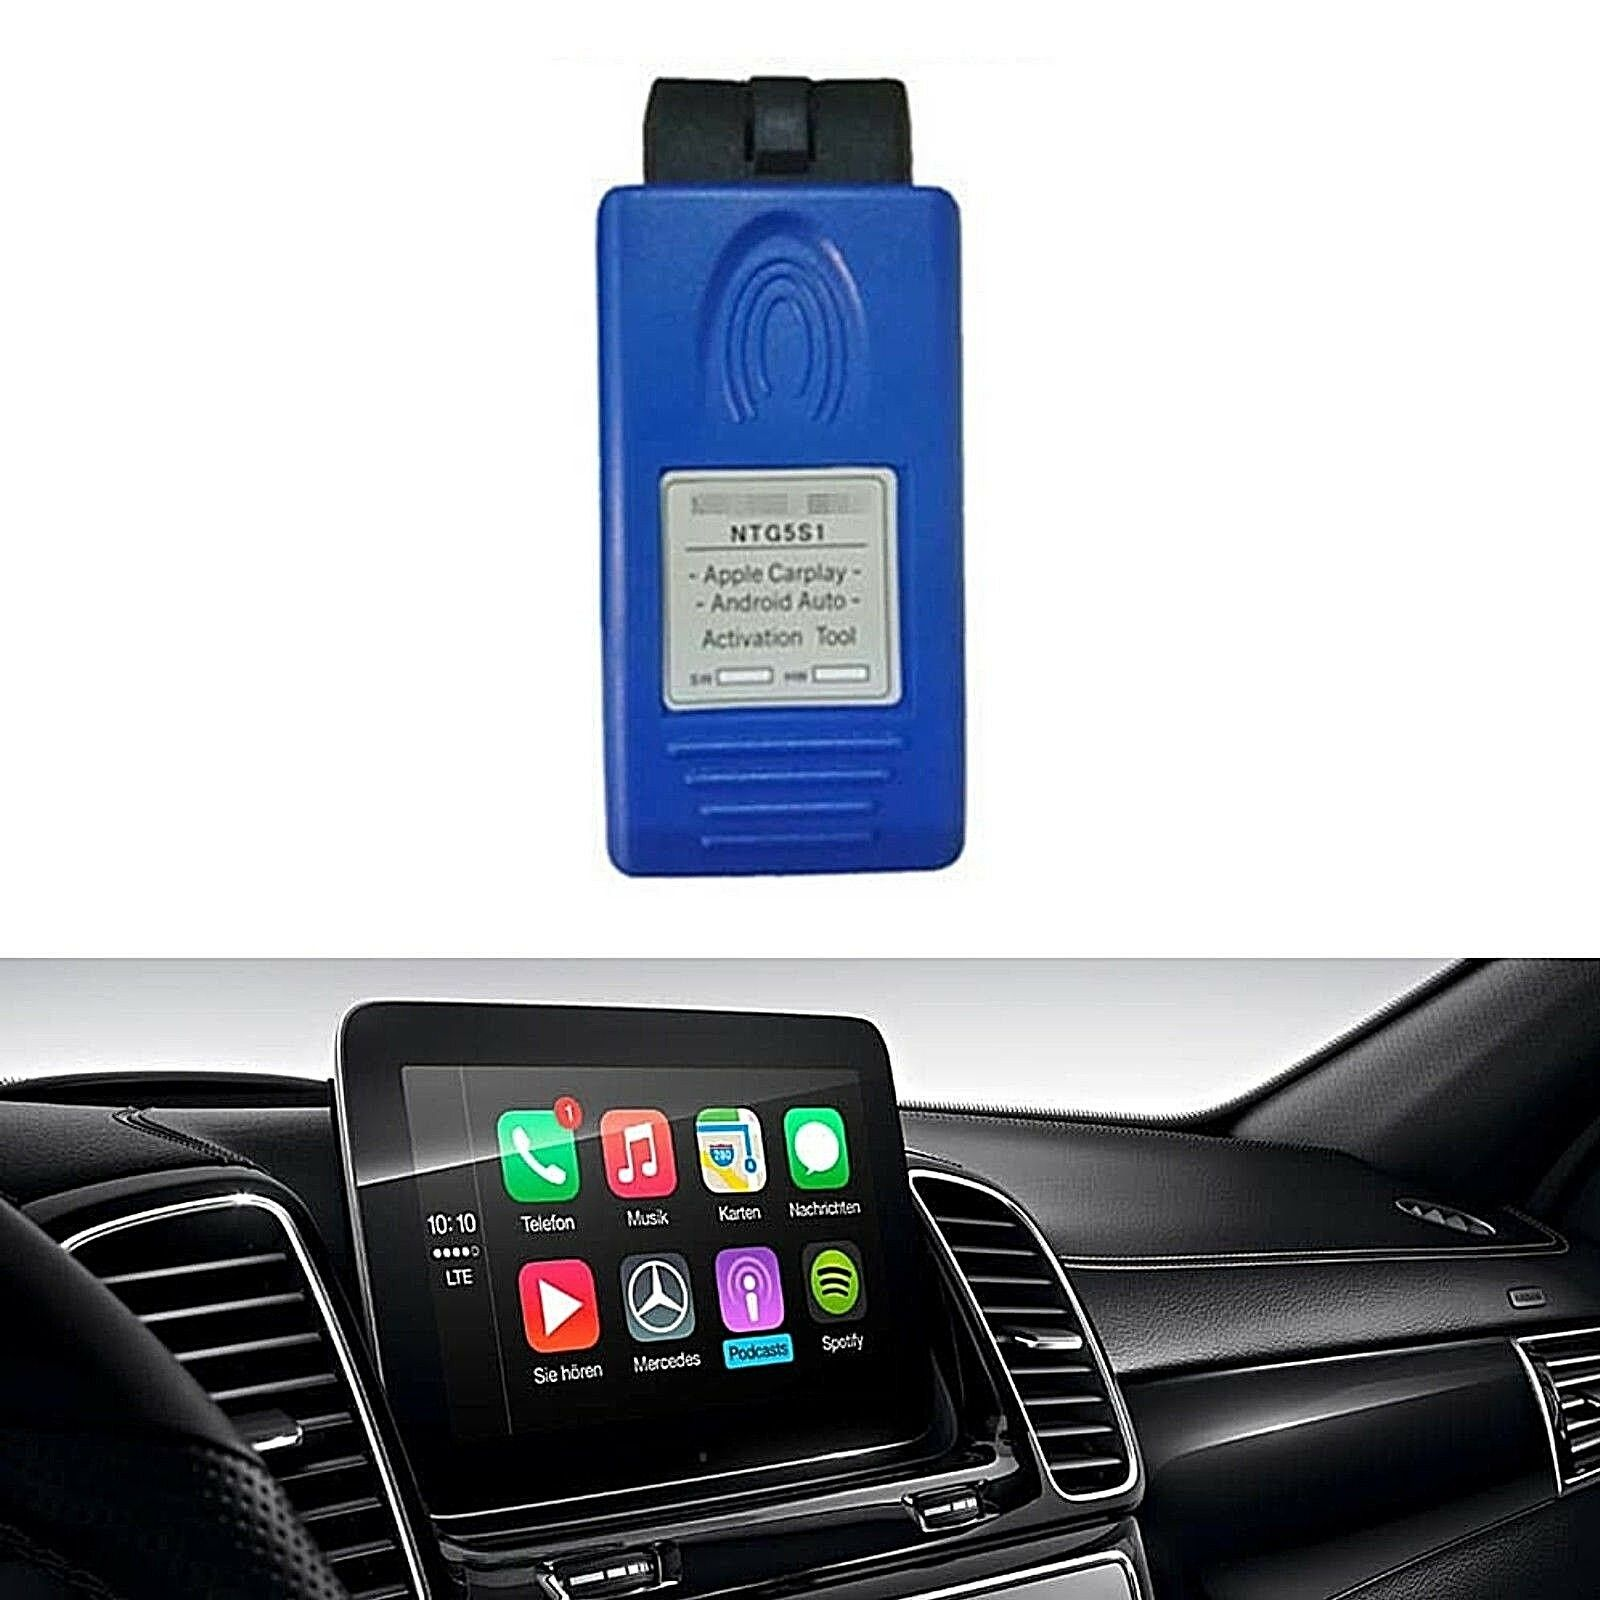 For Mercede Bens NTG5 S1 A/B/CLA/GLA/GLE/CLS Auto Carplay Activation Tools Ntg5s1